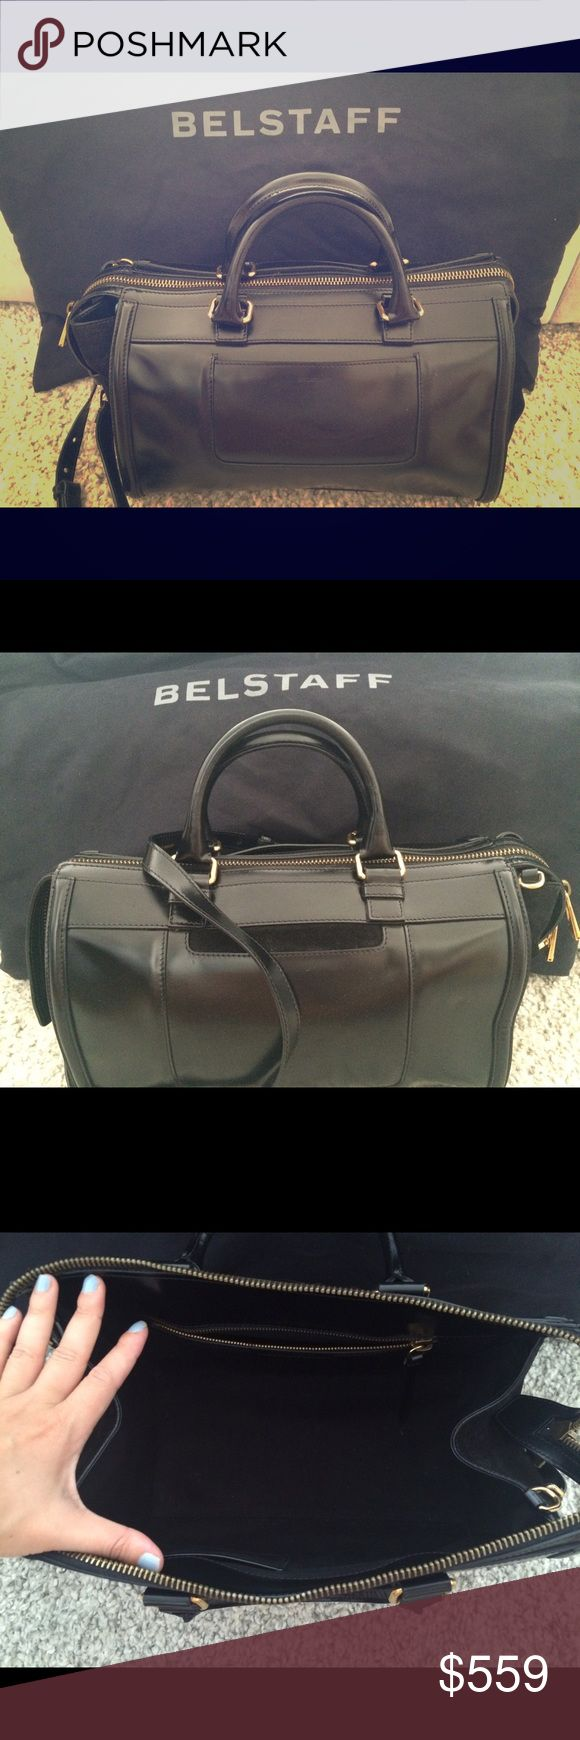 """🍂sale🍂Belstaff Shoulder Bag. Retails@$1,595! Black Belstaff Catherine shoulder bag.  Glossy leather with suede side gussets and brass hardware. Removable, adjustable shoulder strap.Extended, two-way zip top.Two exterior open pockets. Inside, faille lining; one zip and one open pocket. Metal feet protect the bottom of the bag.9""""H x 12 1/2""""W x 7""""D.Made in Italy. I was bought this as a present and just don't find myself using it that often. It's in great condition. Comes with materiel…"""